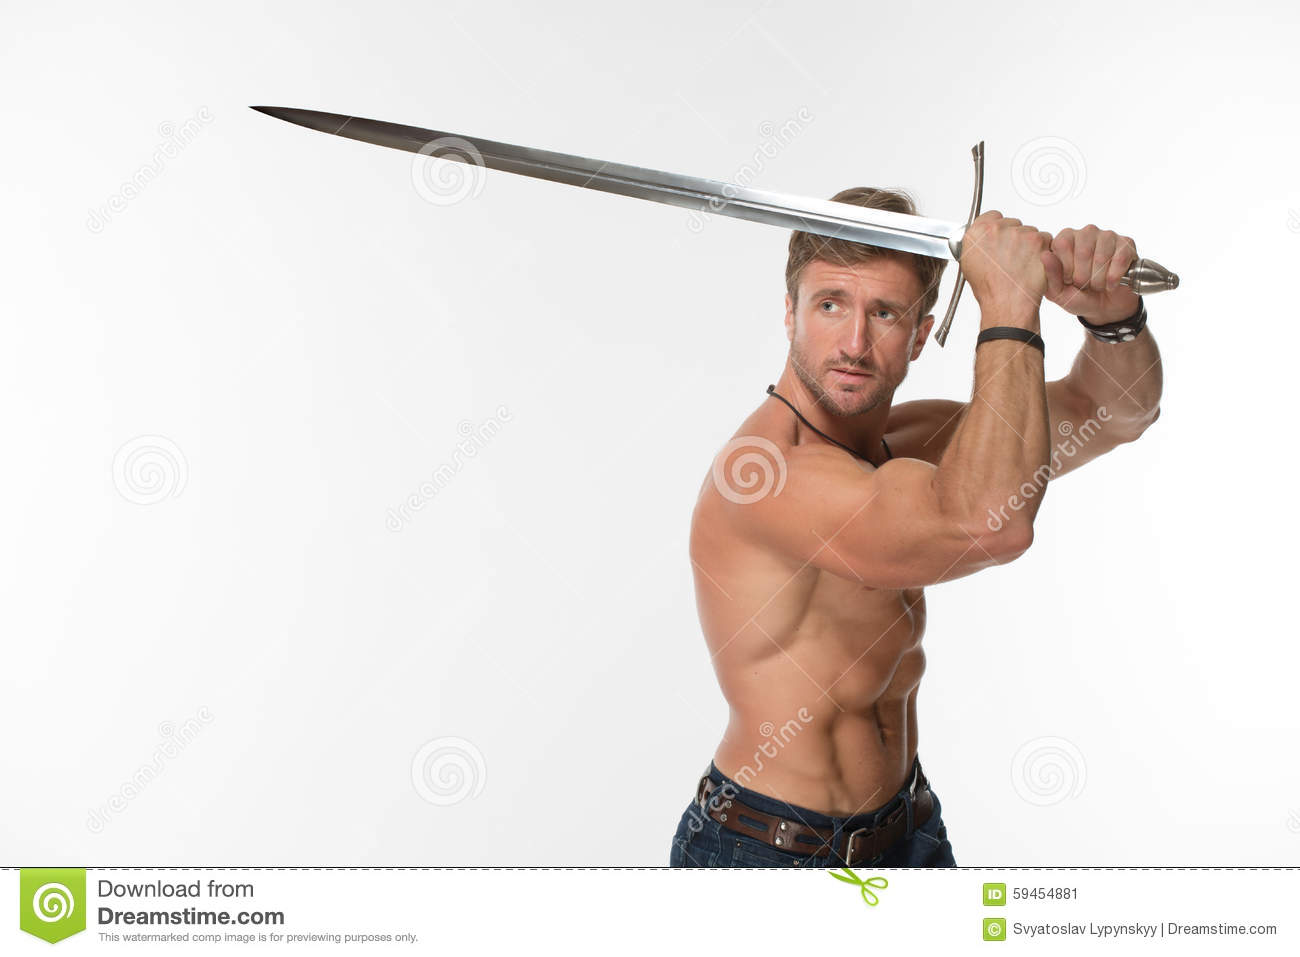 Guys with swords